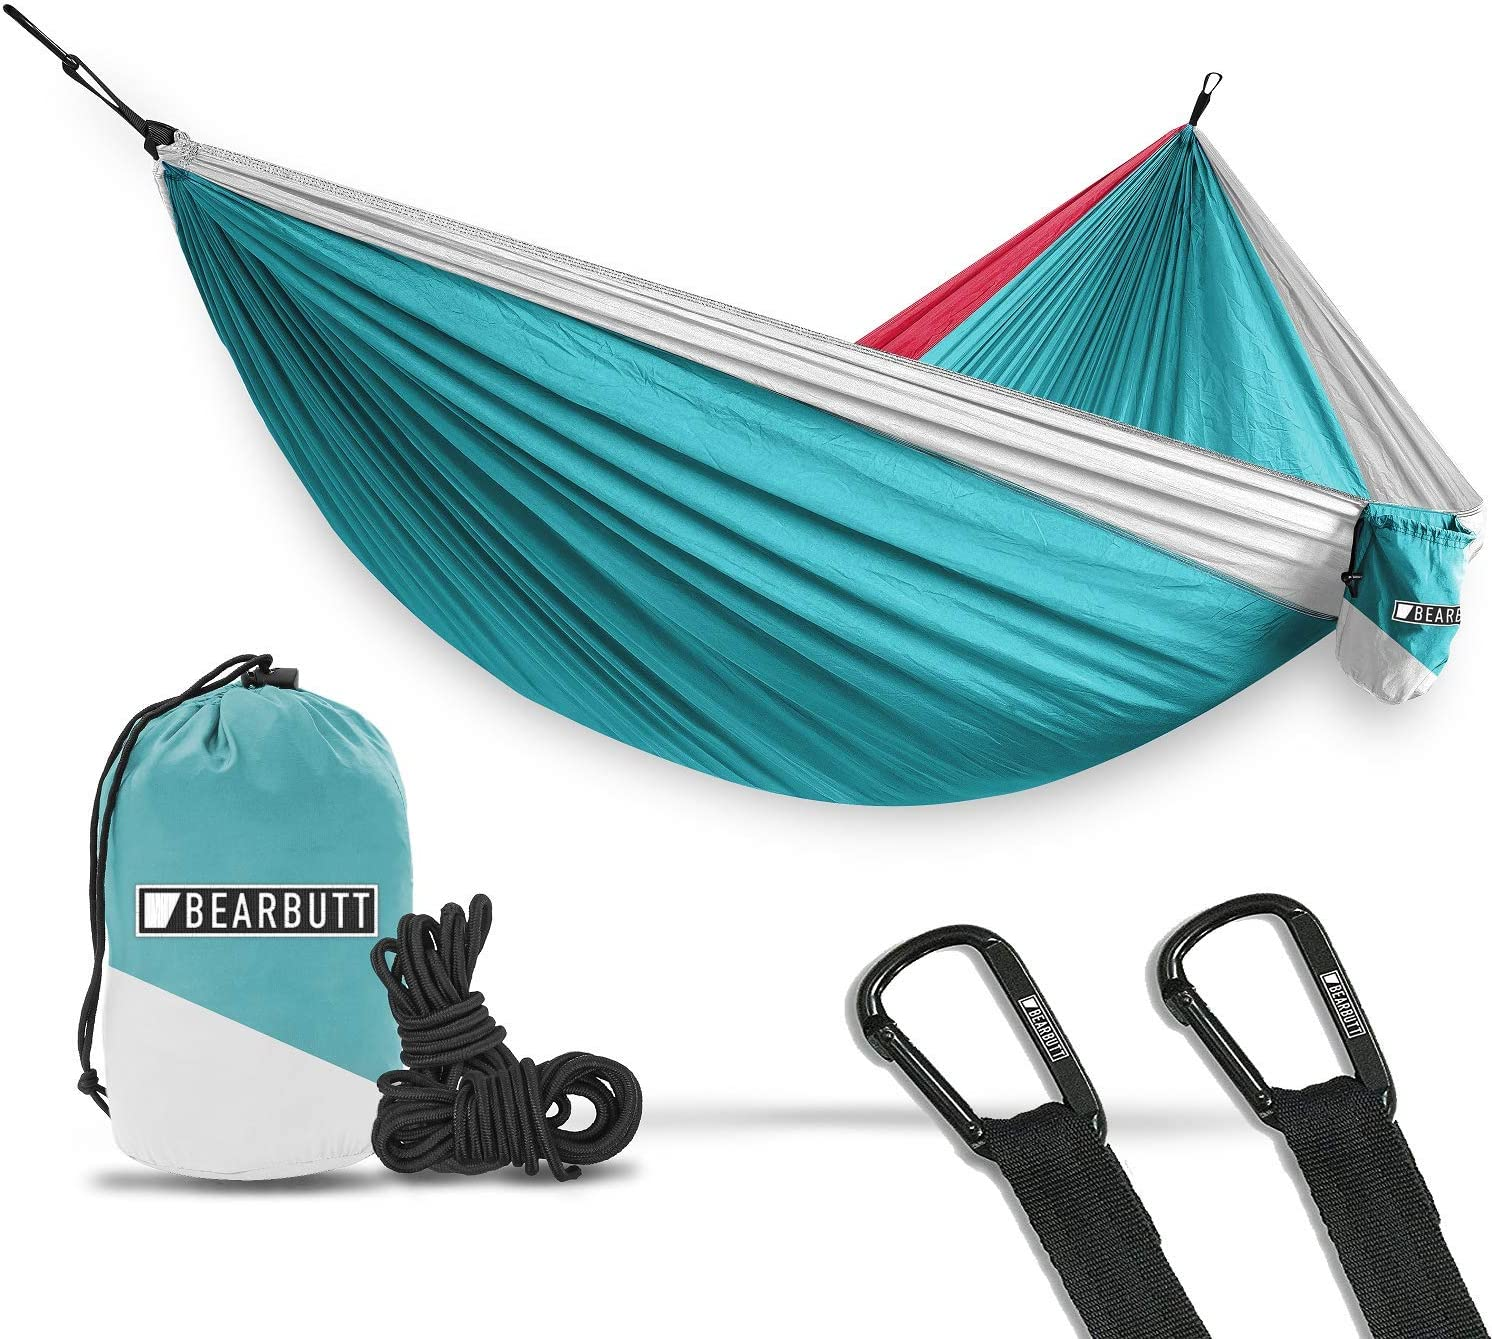 Bear Butt Hammocks – Camping Hammock for Outdoors, Backpacking Camping Gear – Double hammock, Portable hammock, 2 Person Hammock for Travel, outdoors – Tree Hiking Gear – Hammock that Holds 700lbs